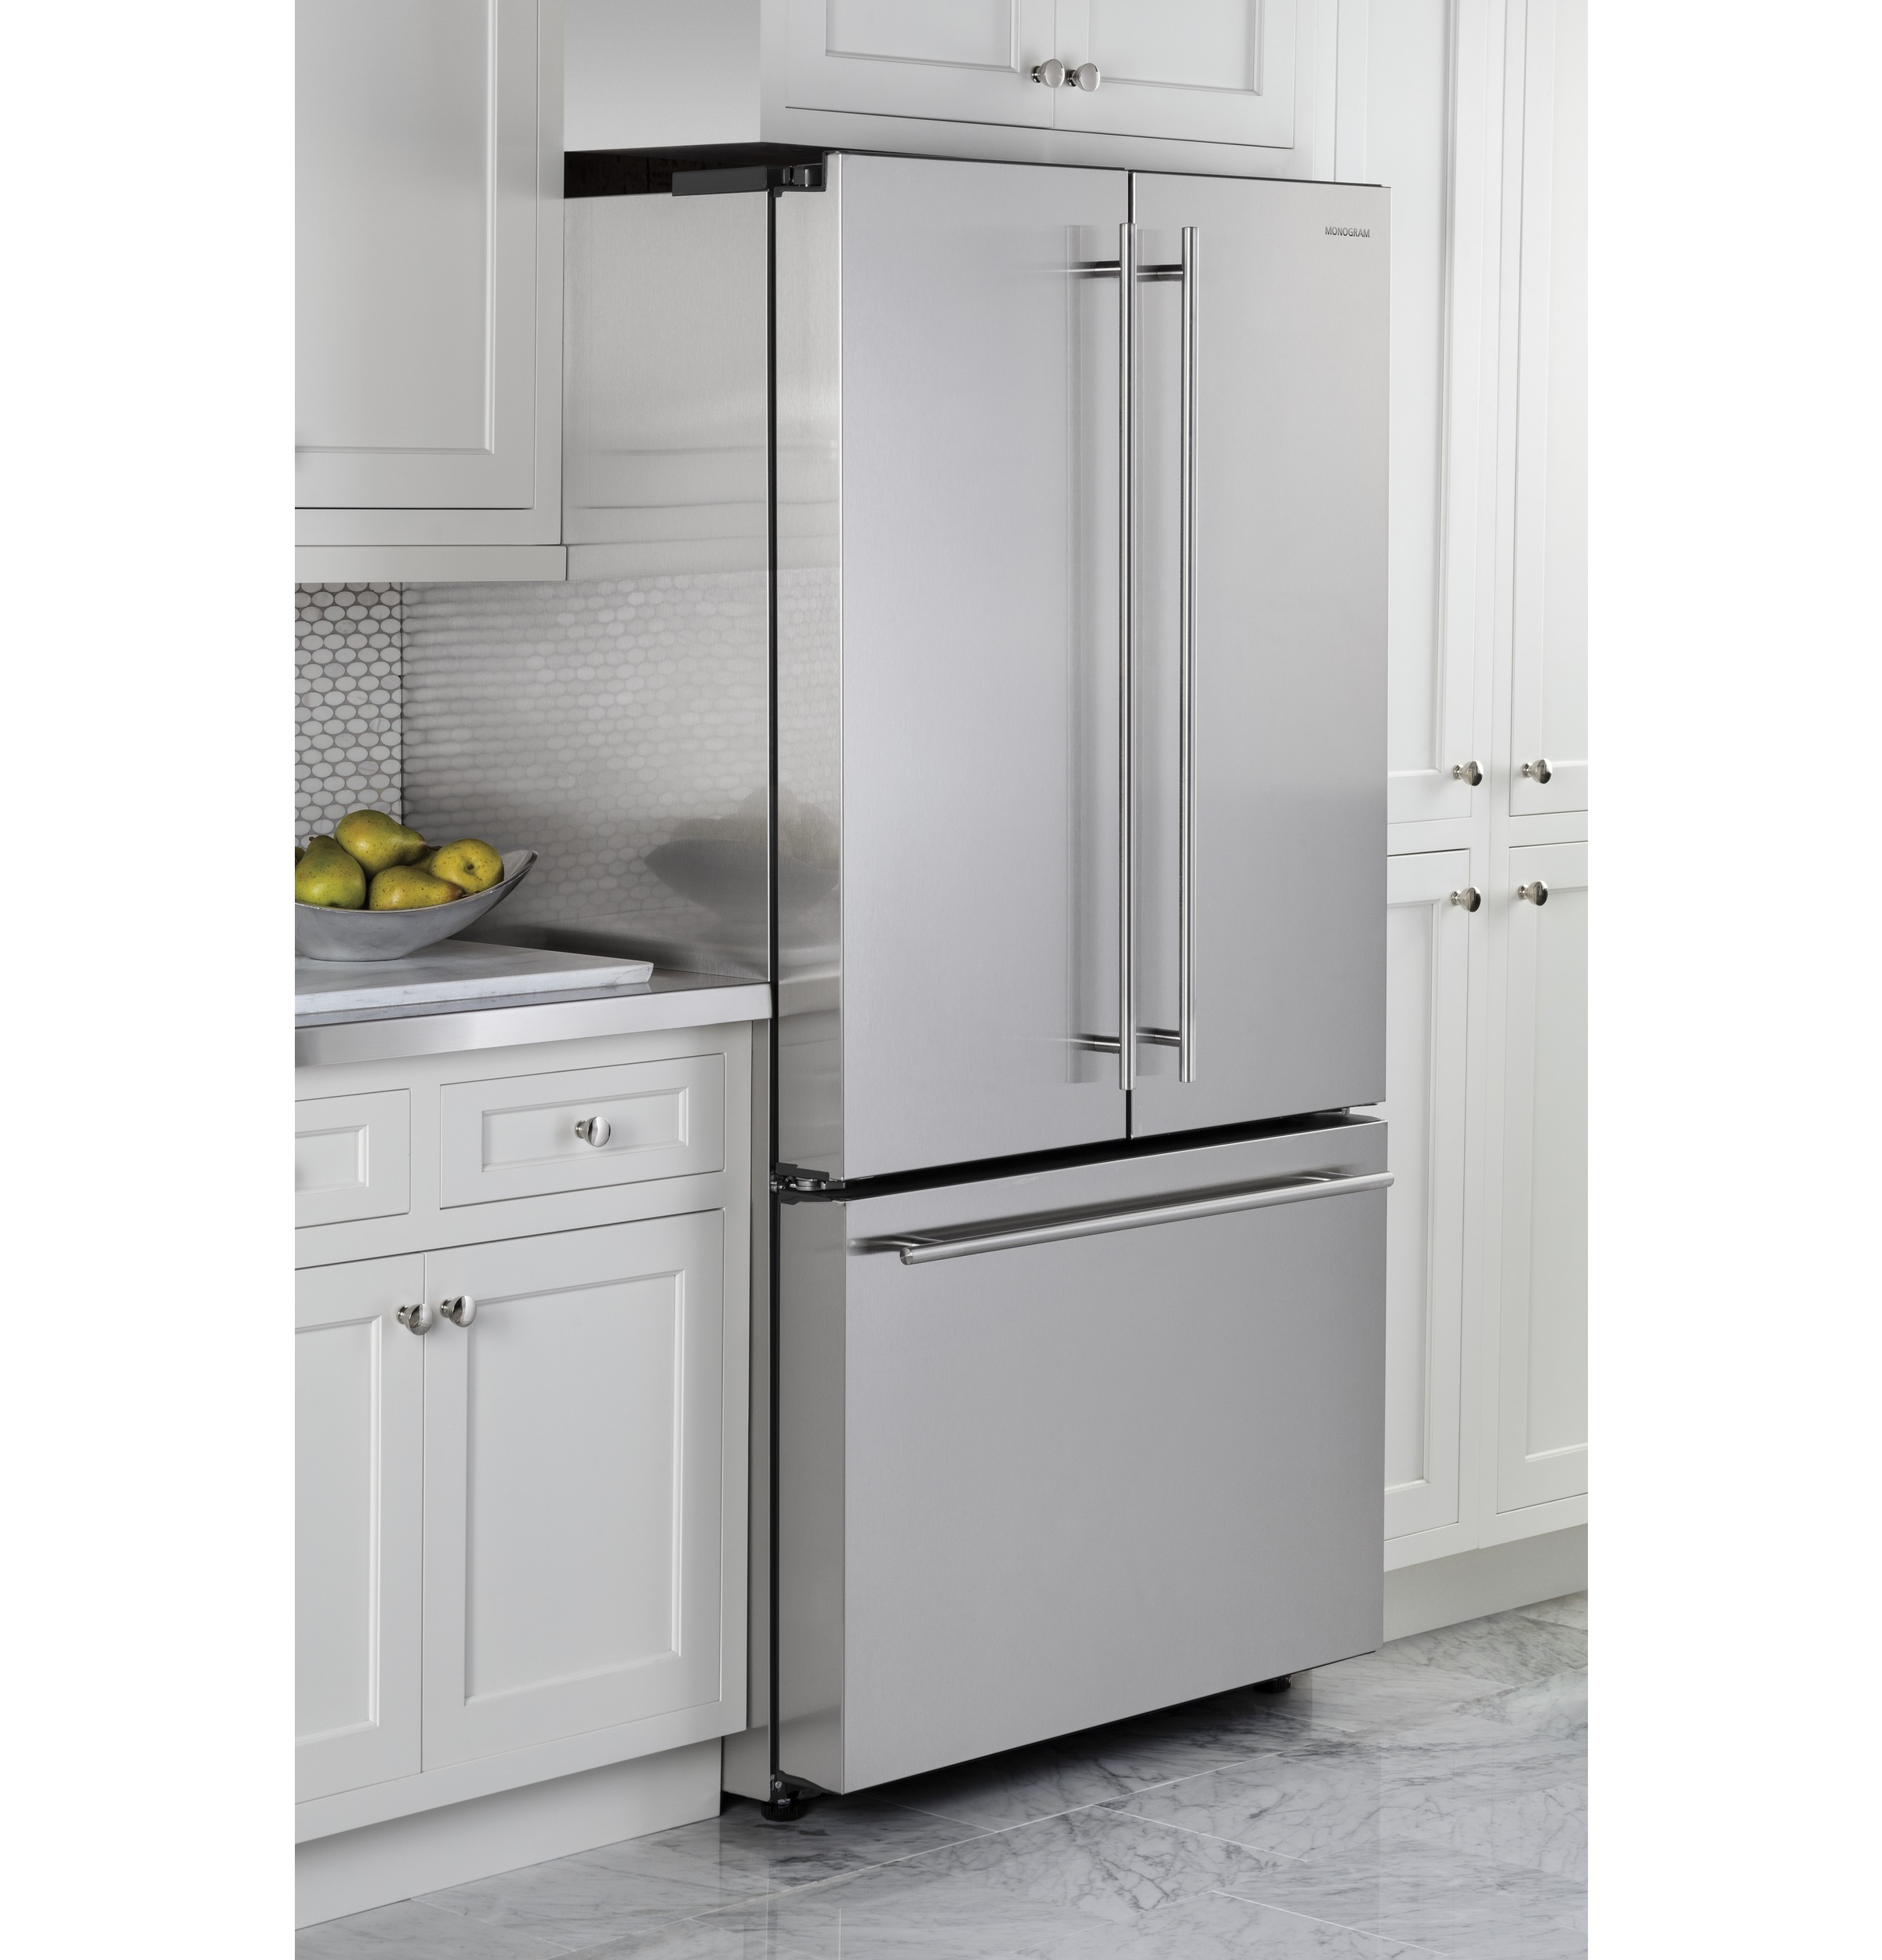 What Is The Depth Of A Counter Depth Refrigerator Monogram Energy Starar 231 Cu Ft Counter Depth French Door